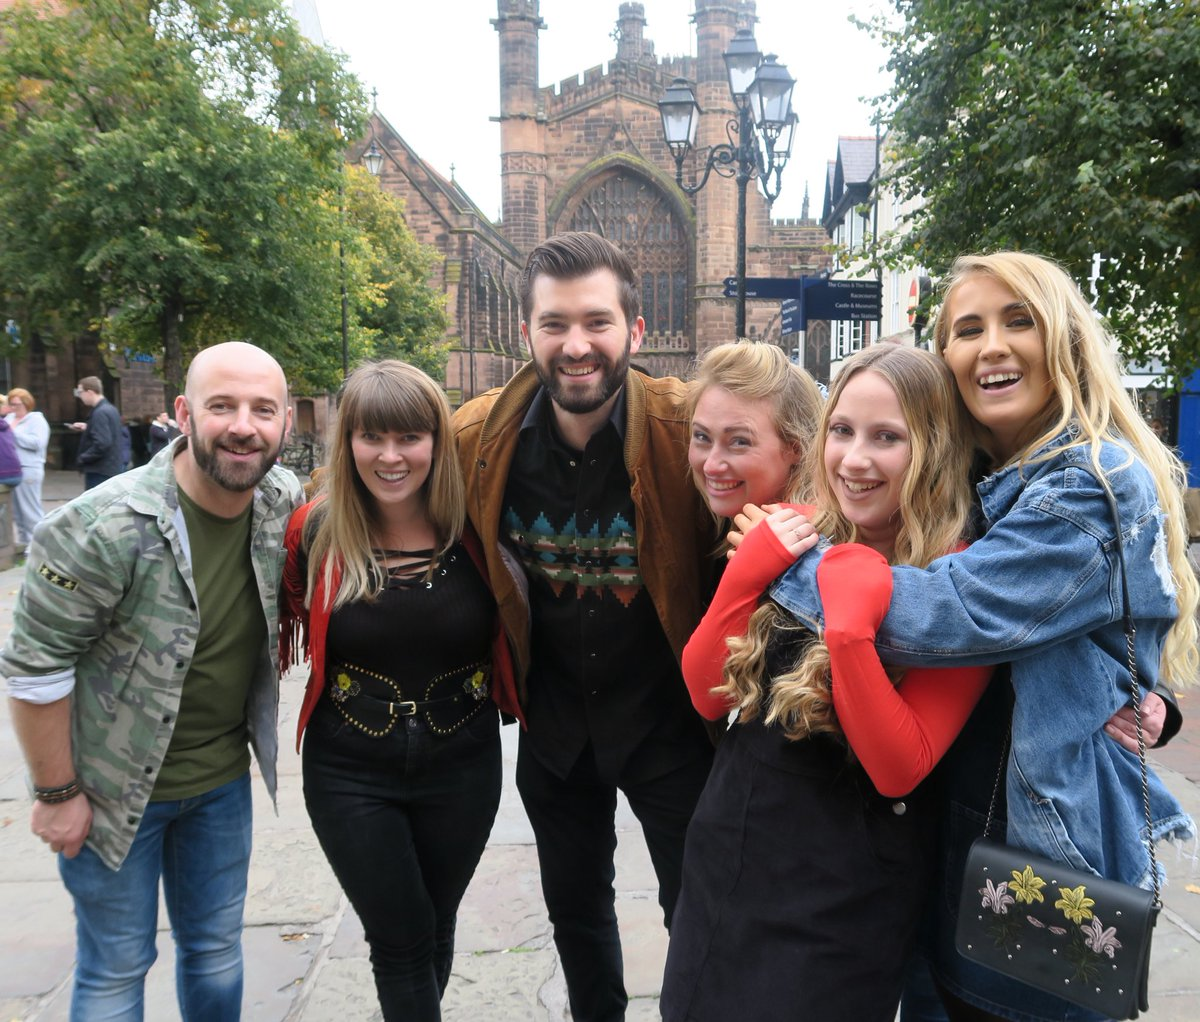 Great to play in #chester today for the opening of @inTUNEative and really nice to meet/hear @BlueGenesTrio along with the other great acts!<br>http://pic.twitter.com/ieWJ73fBaV